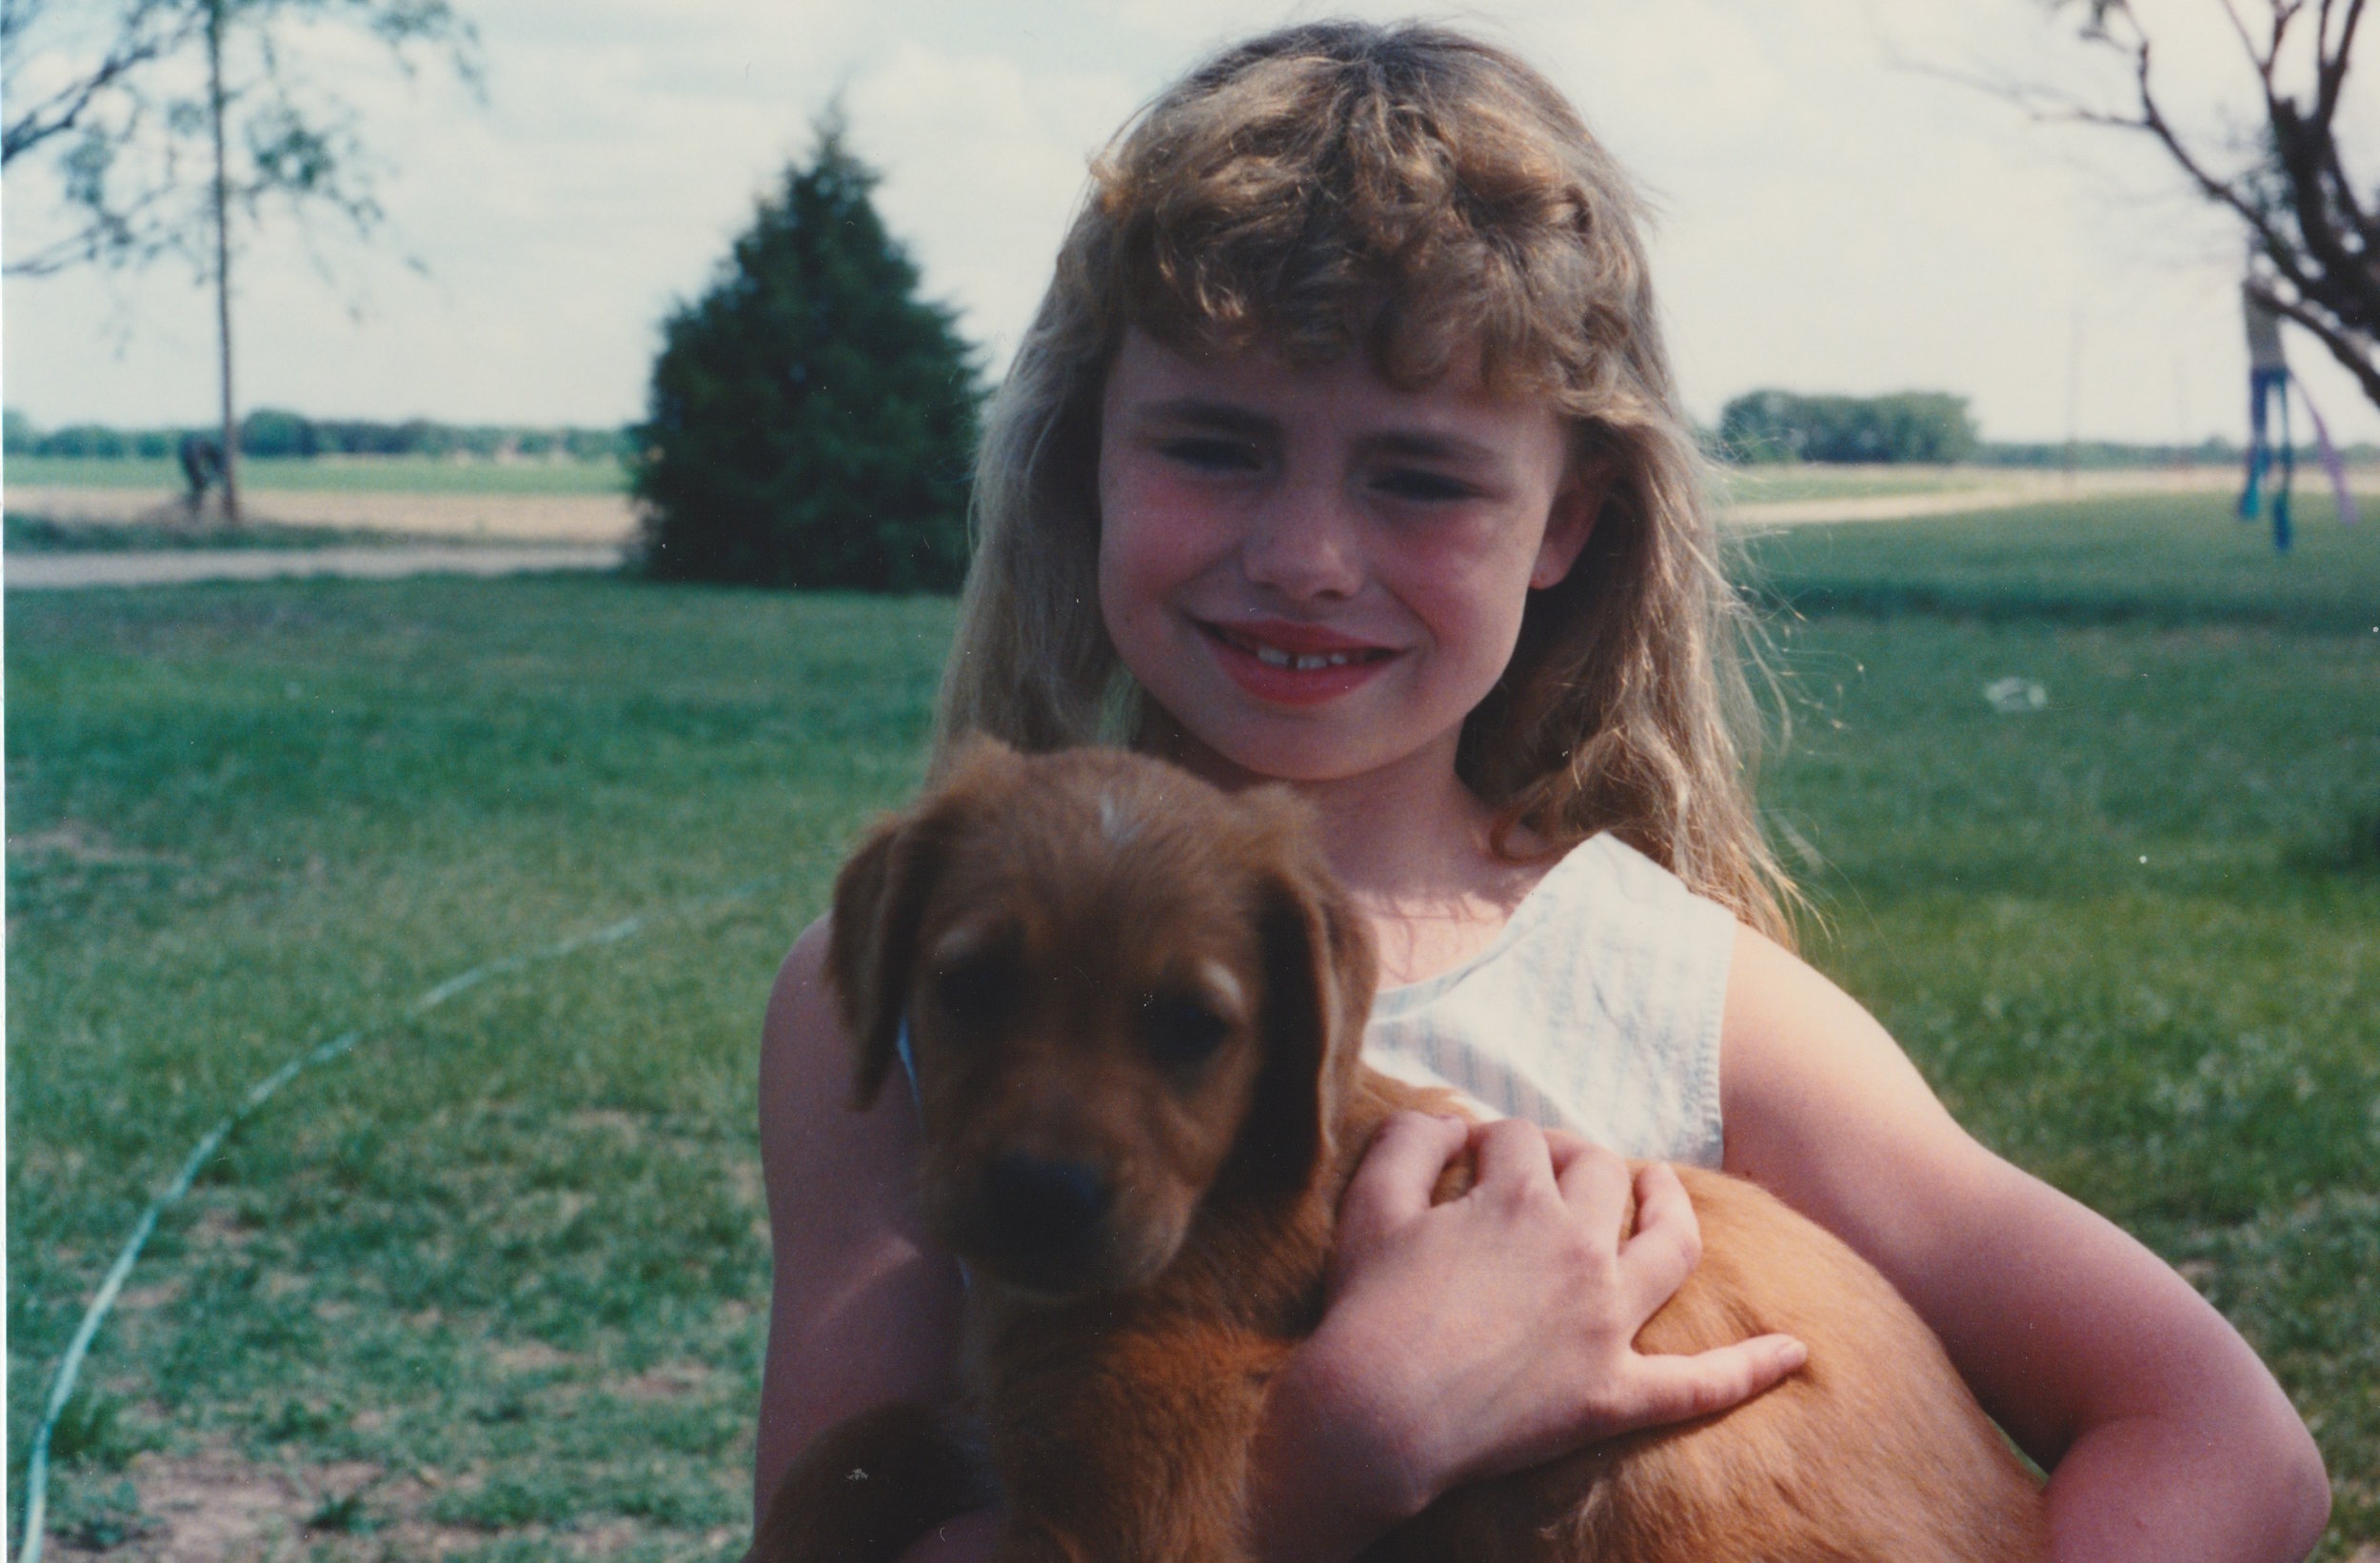 Little Lindsay with sunburnt cheeks, a sprinkler, and a dog named Penny.